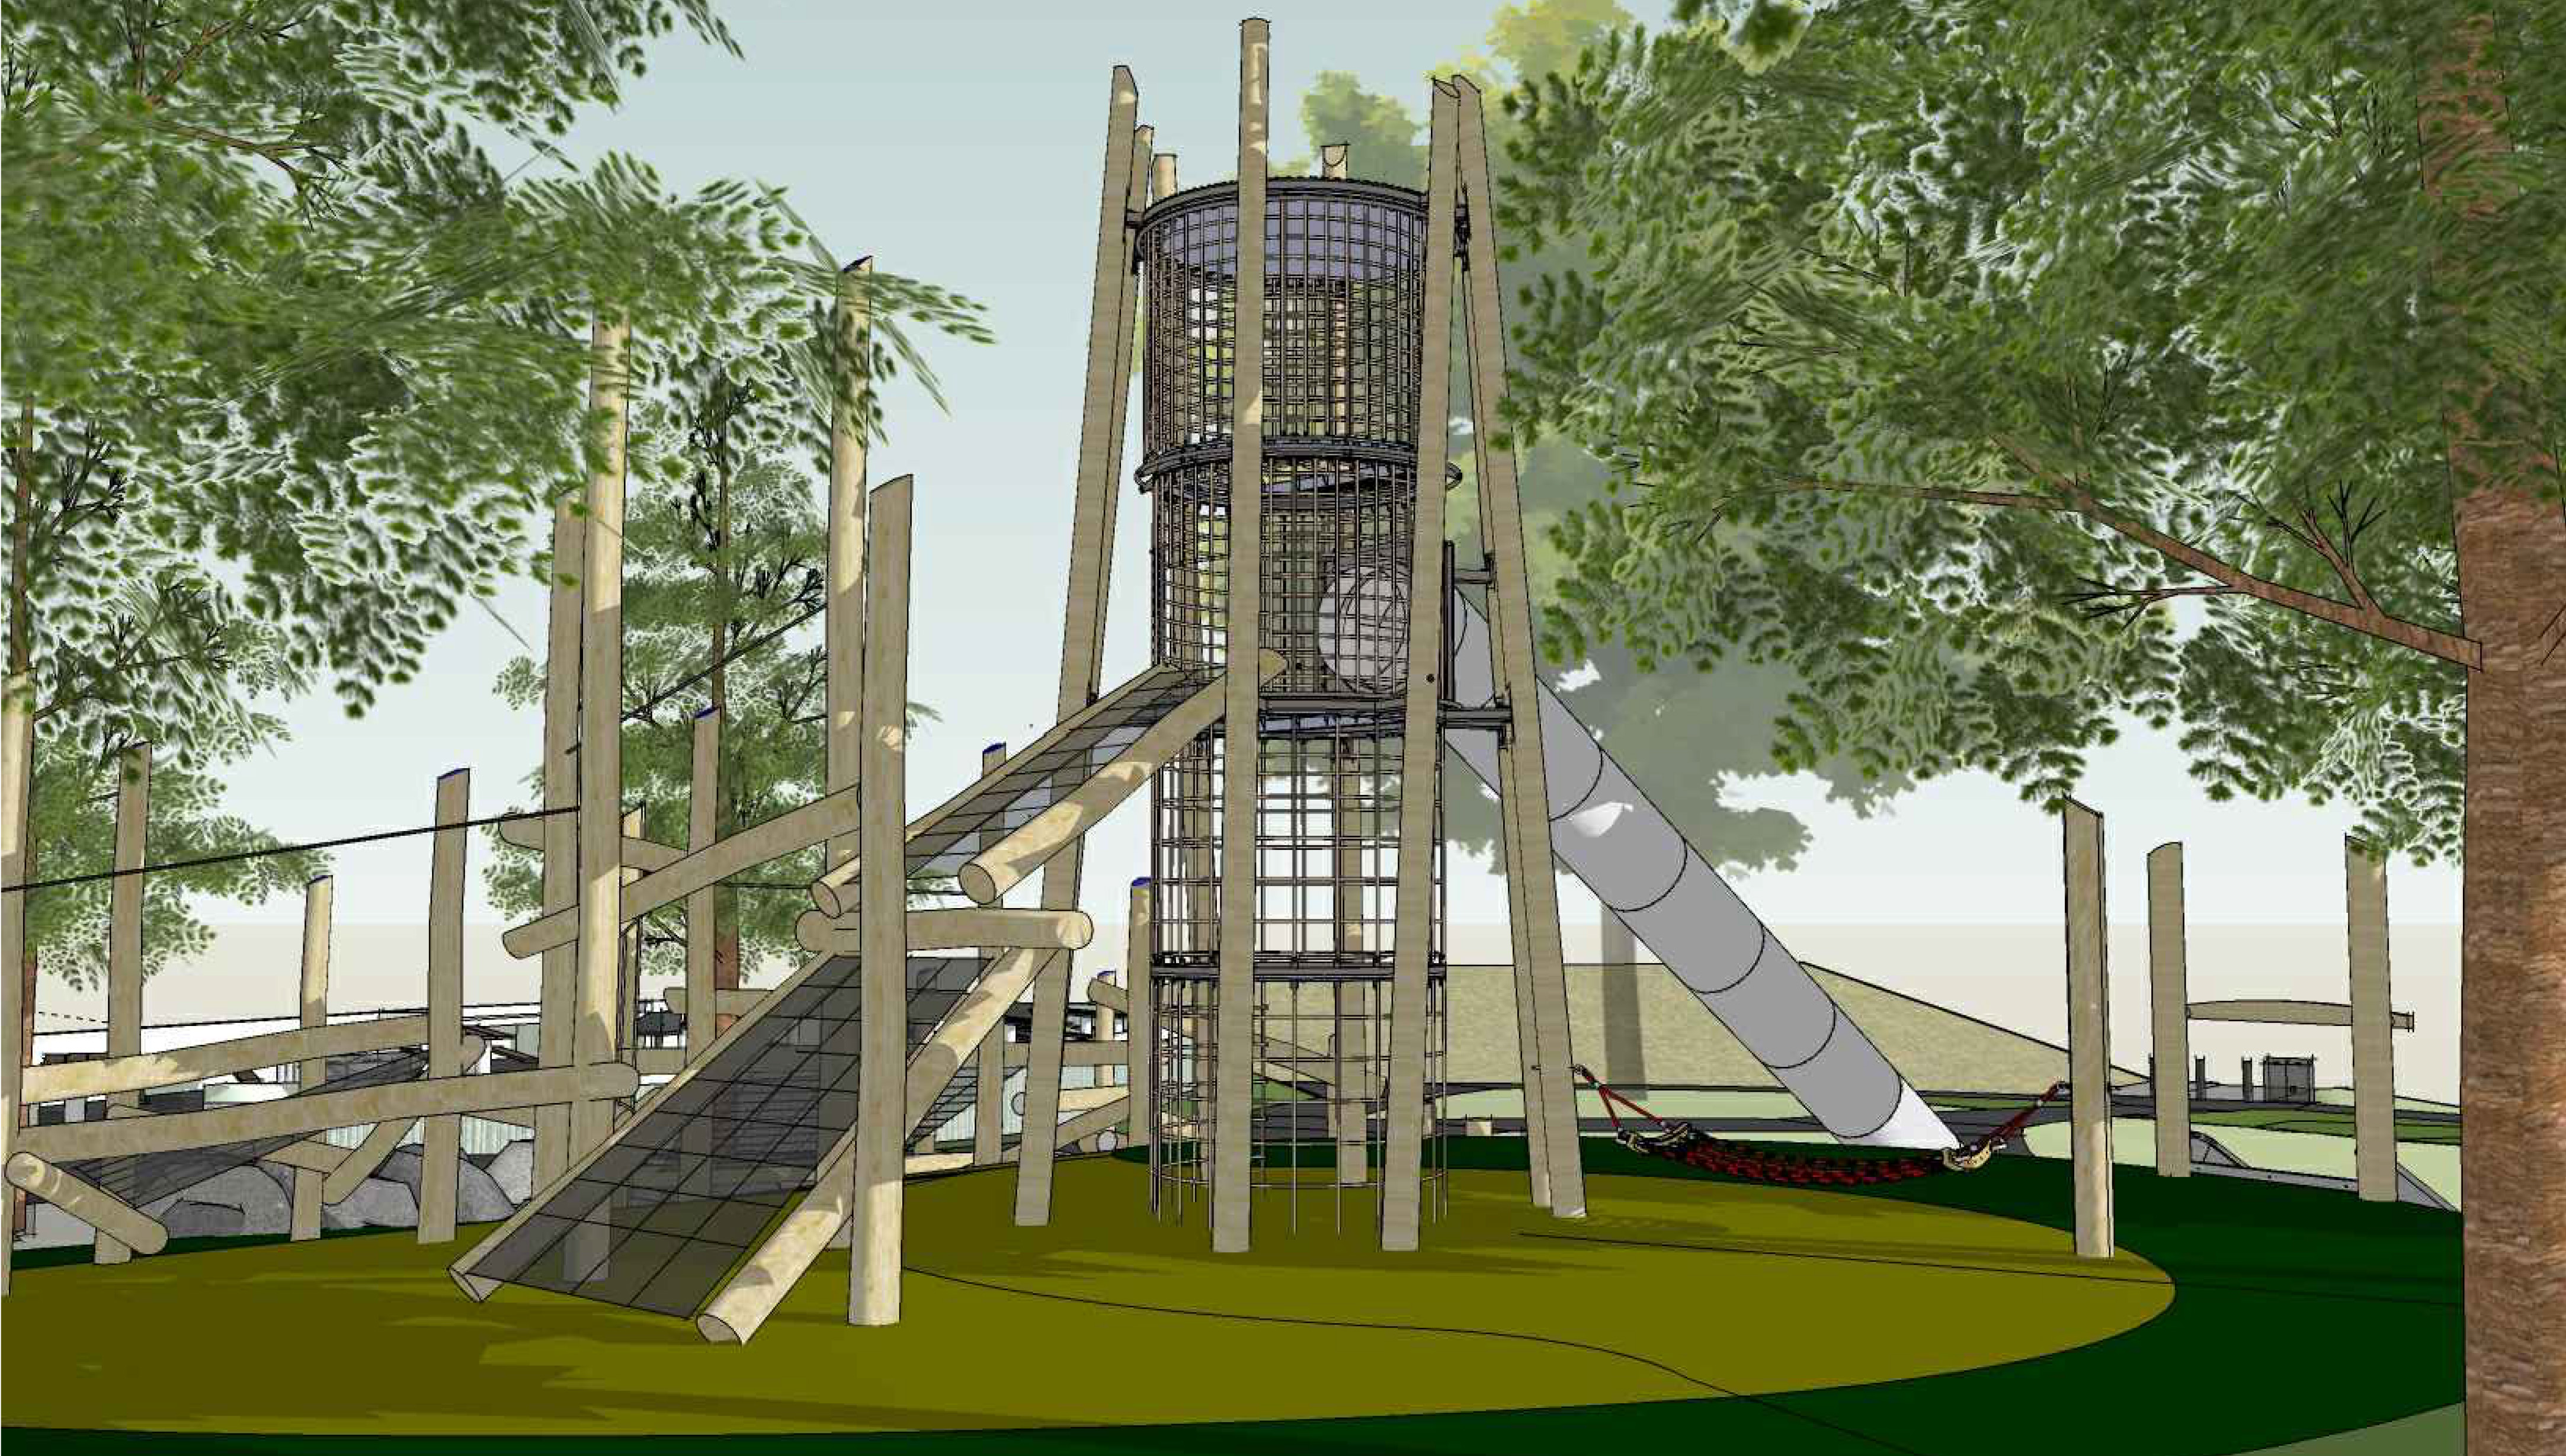 McLaren Park Slide Digital Rendering